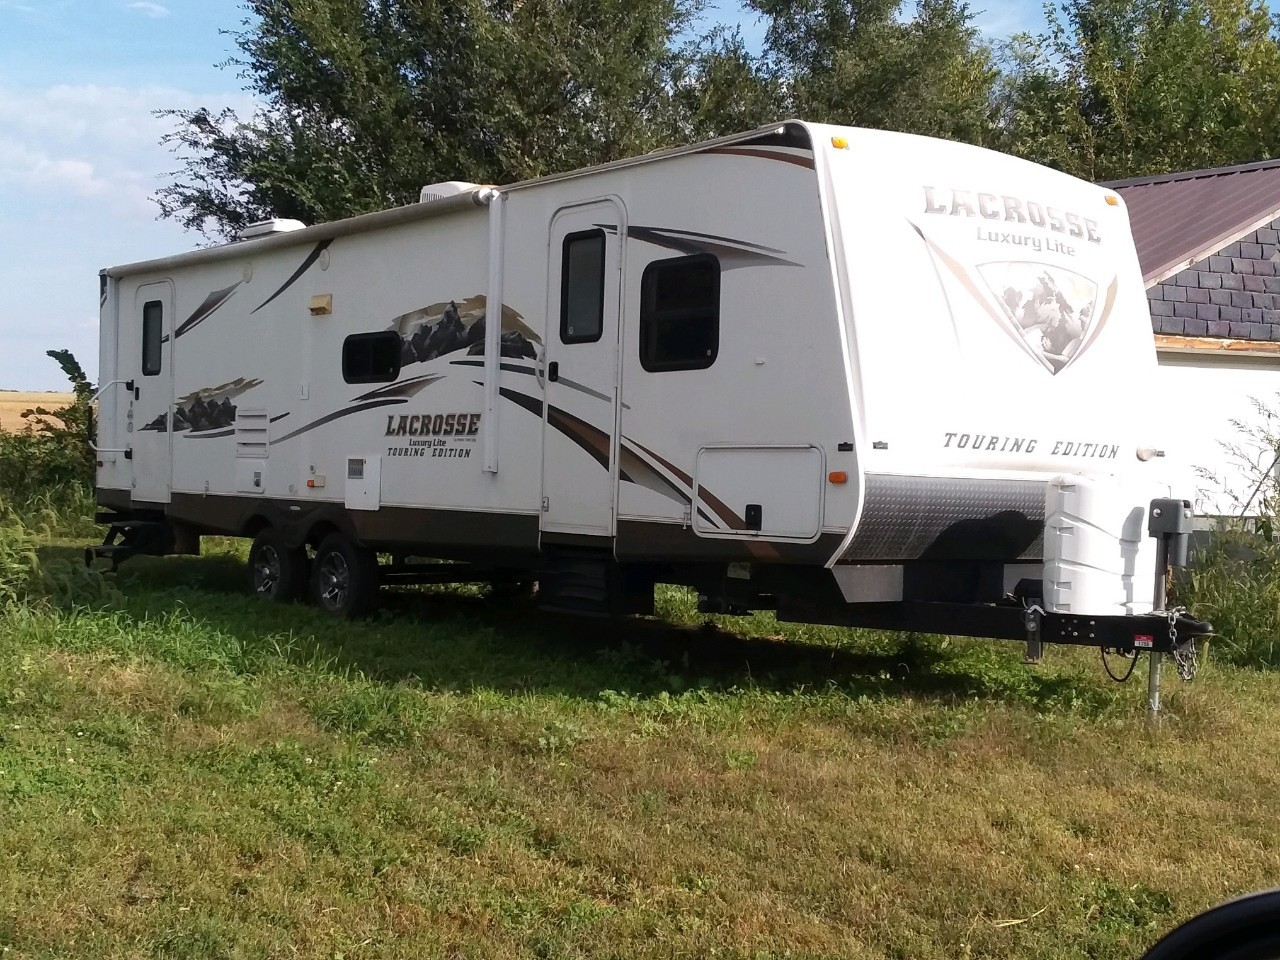 Fine Nebraska 1 168 T Pop Up Campers Near Me For Sale Rv Trader Wiring Cloud Cranvenetmohammedshrineorg